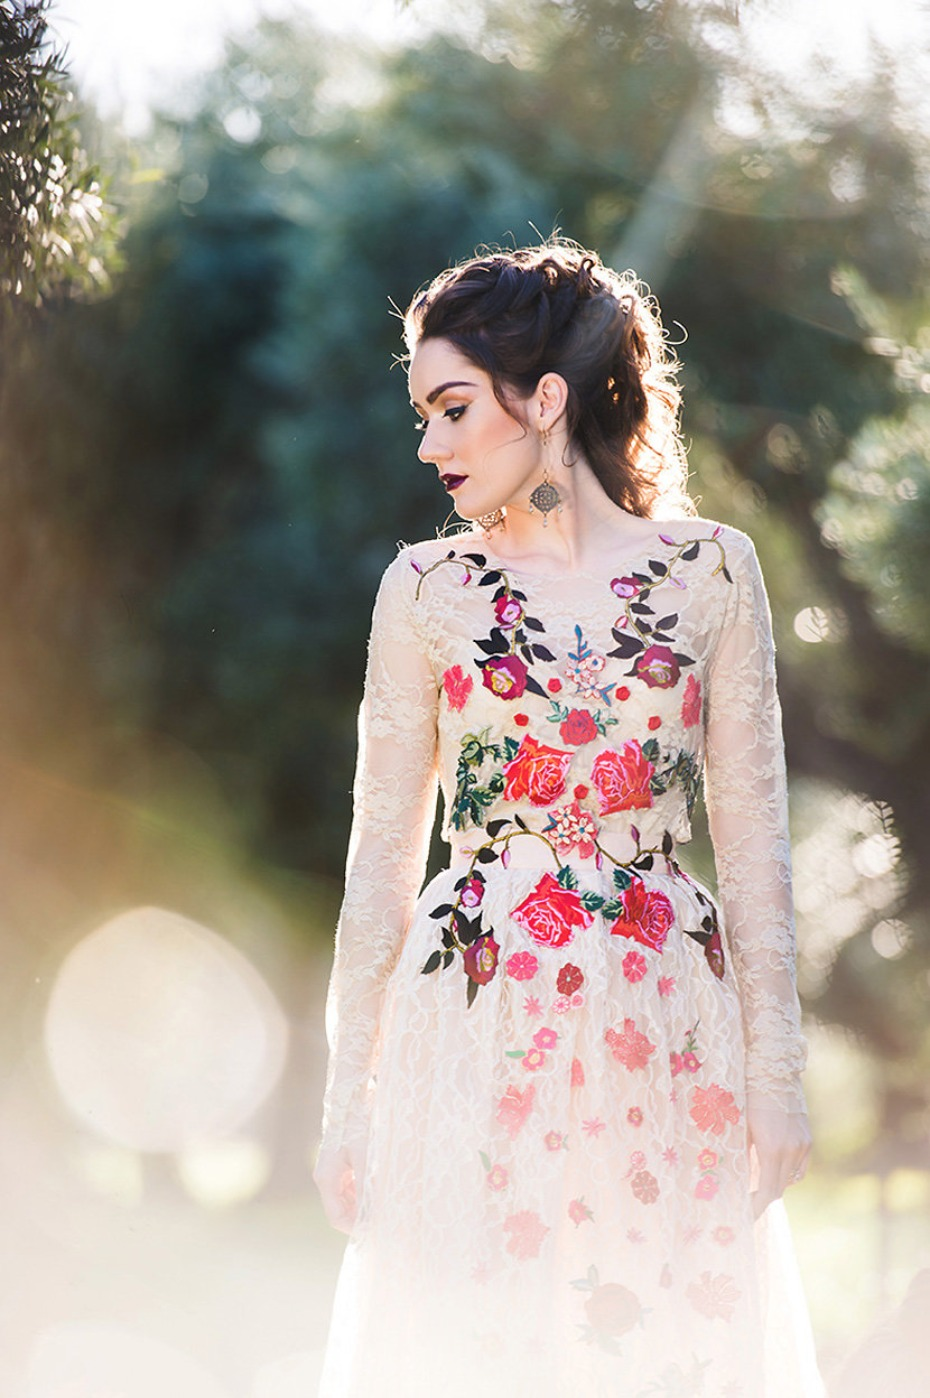 floral wedding dress by Dark Pony Designs